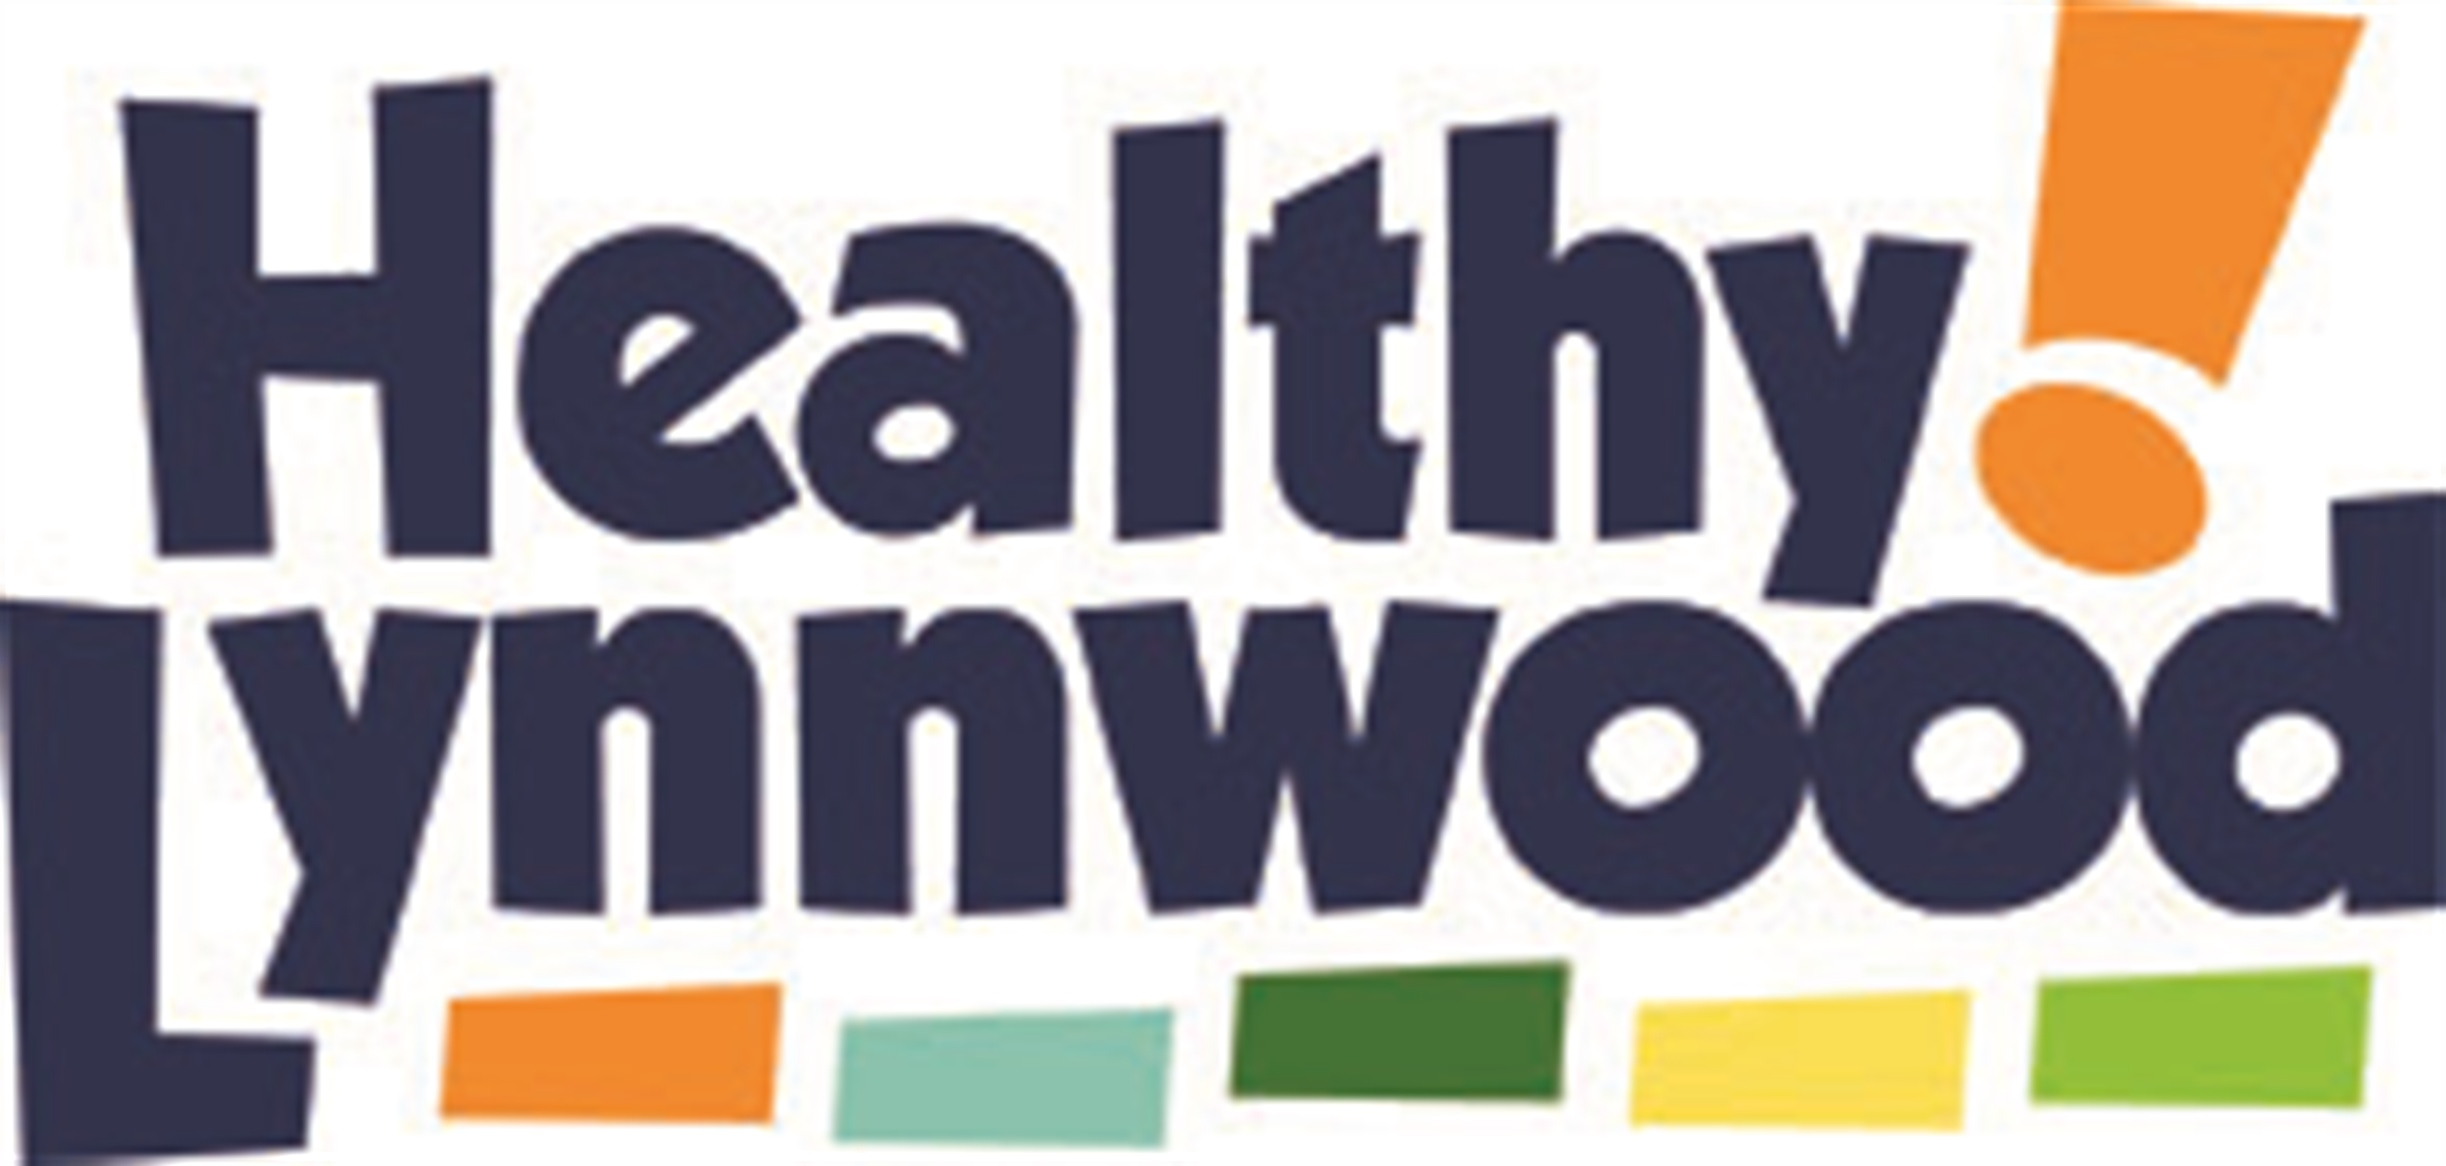 Healthy-Lynnwood-logo-color.png